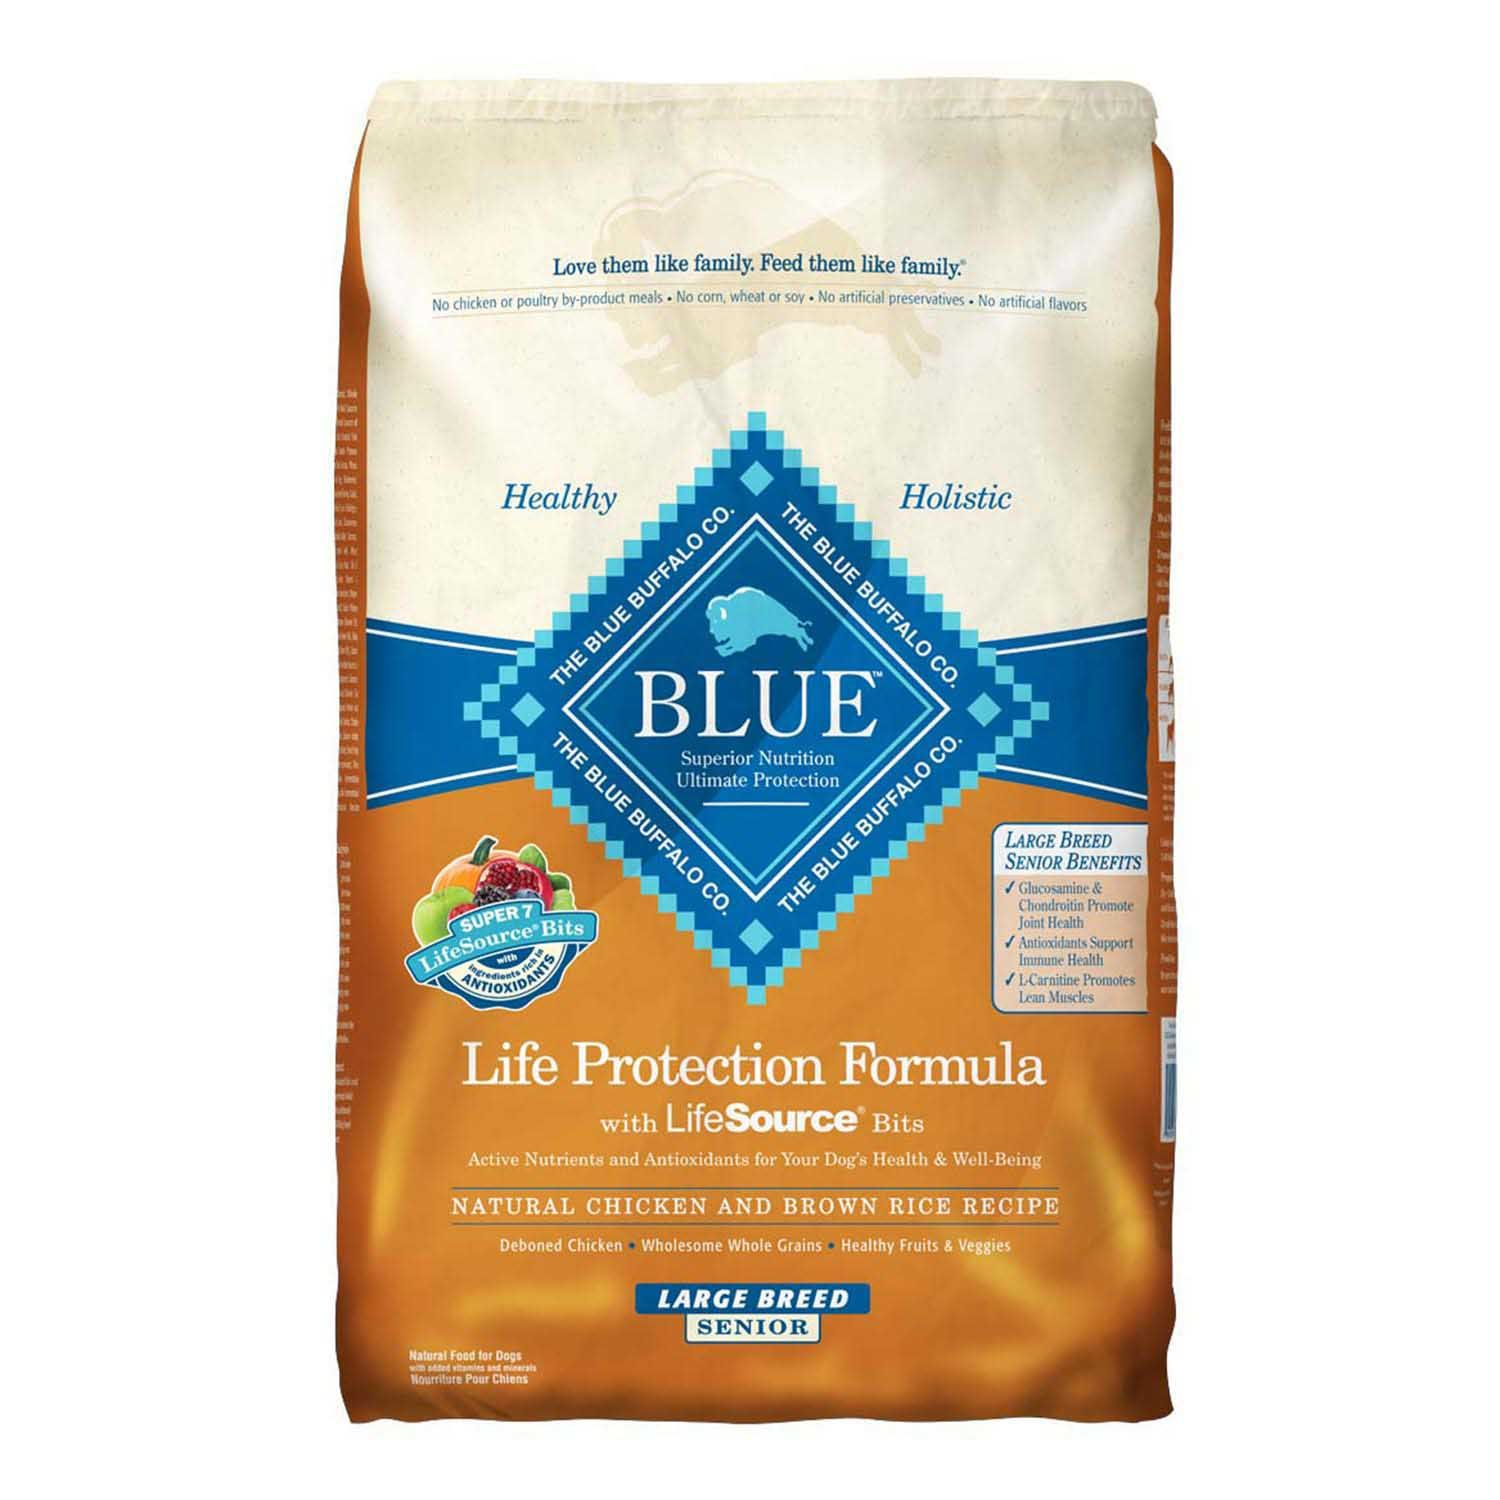 Blue buffalo chicken brown rice large breed senior dry